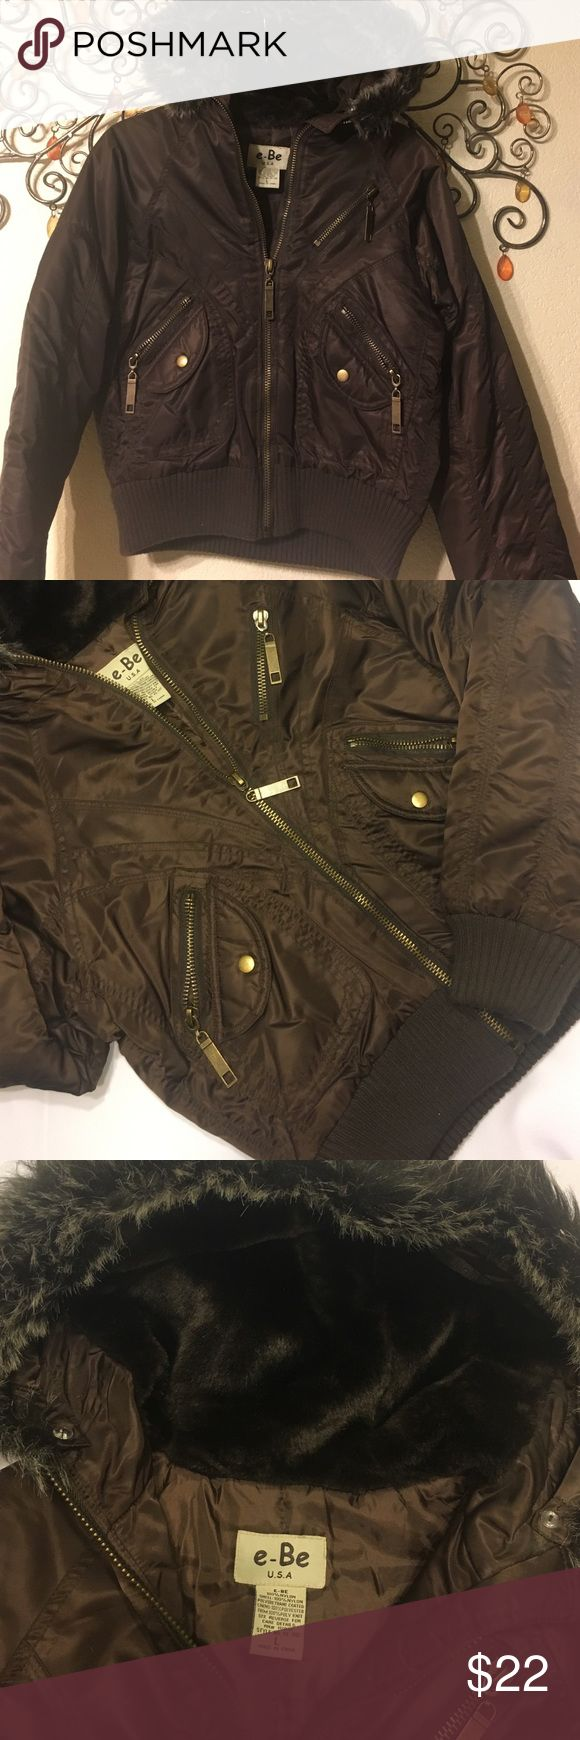 Brown Hooded Bomber Jacket  Beautiful Quilted Bomber Jacket/Hood has removable fur for a more casual look. Ready for your winter wardrobe e-Be USA Jackets & Coats